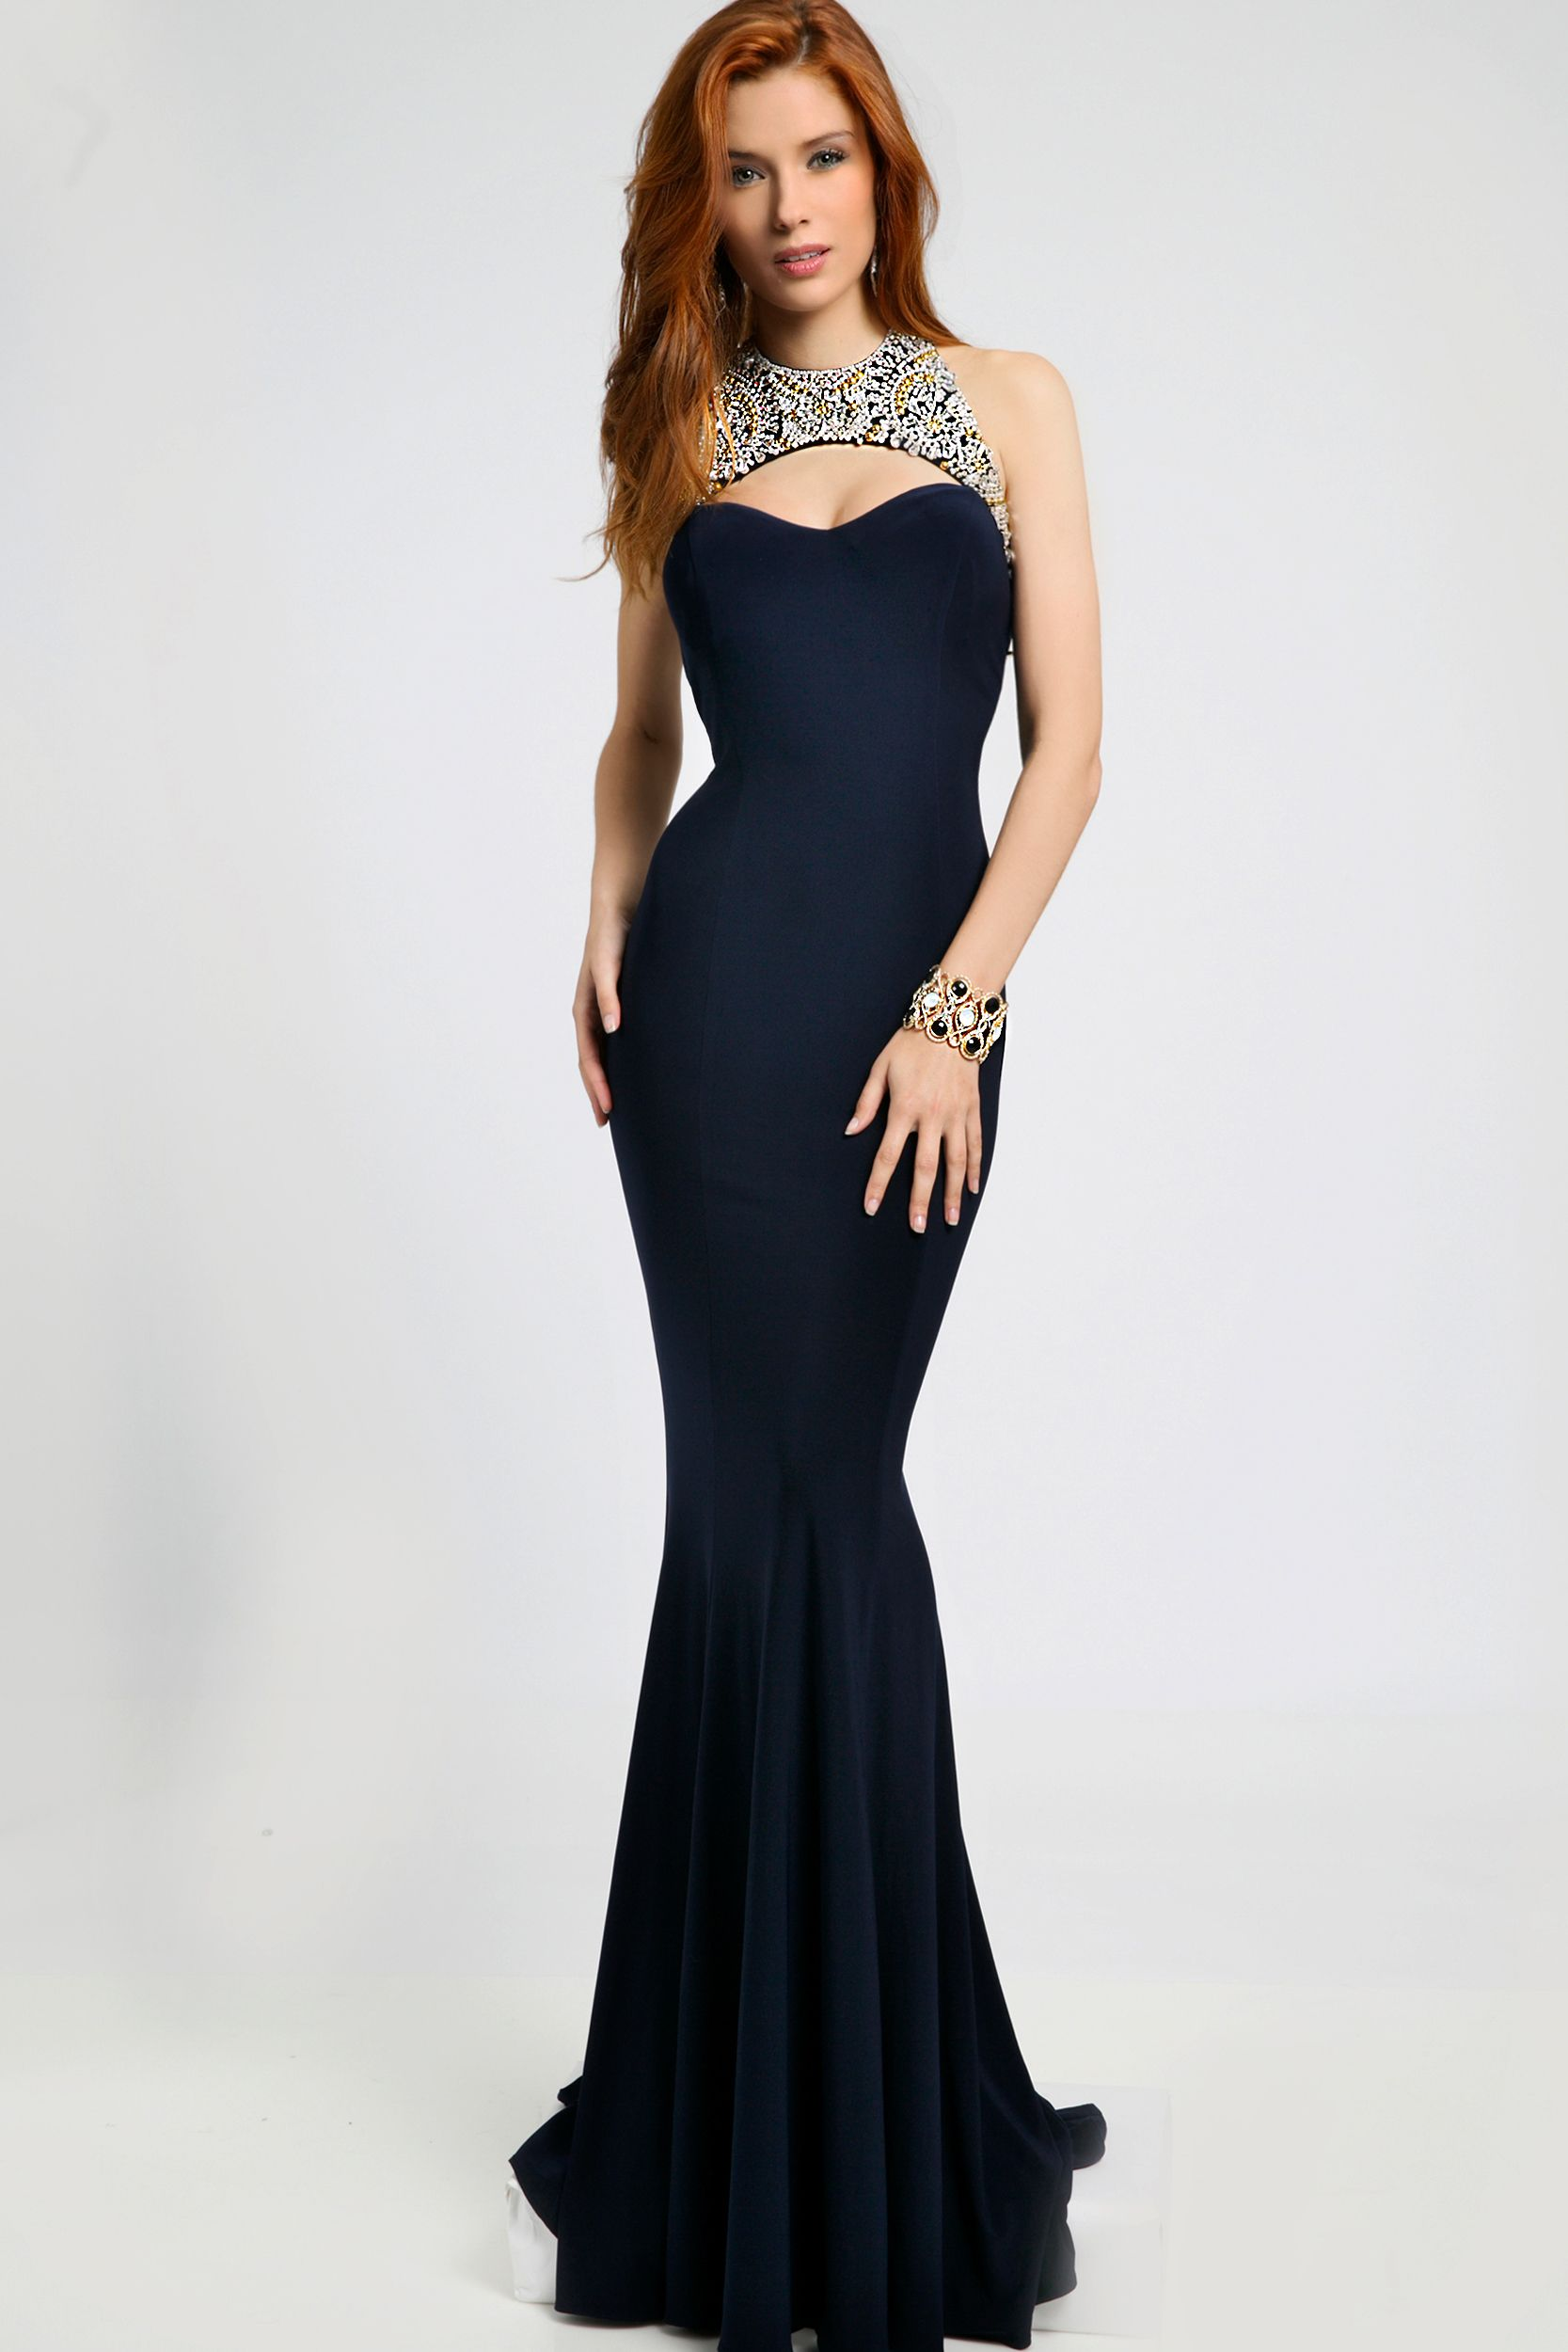 Halter fitted long prom gown I want this dress for prom this